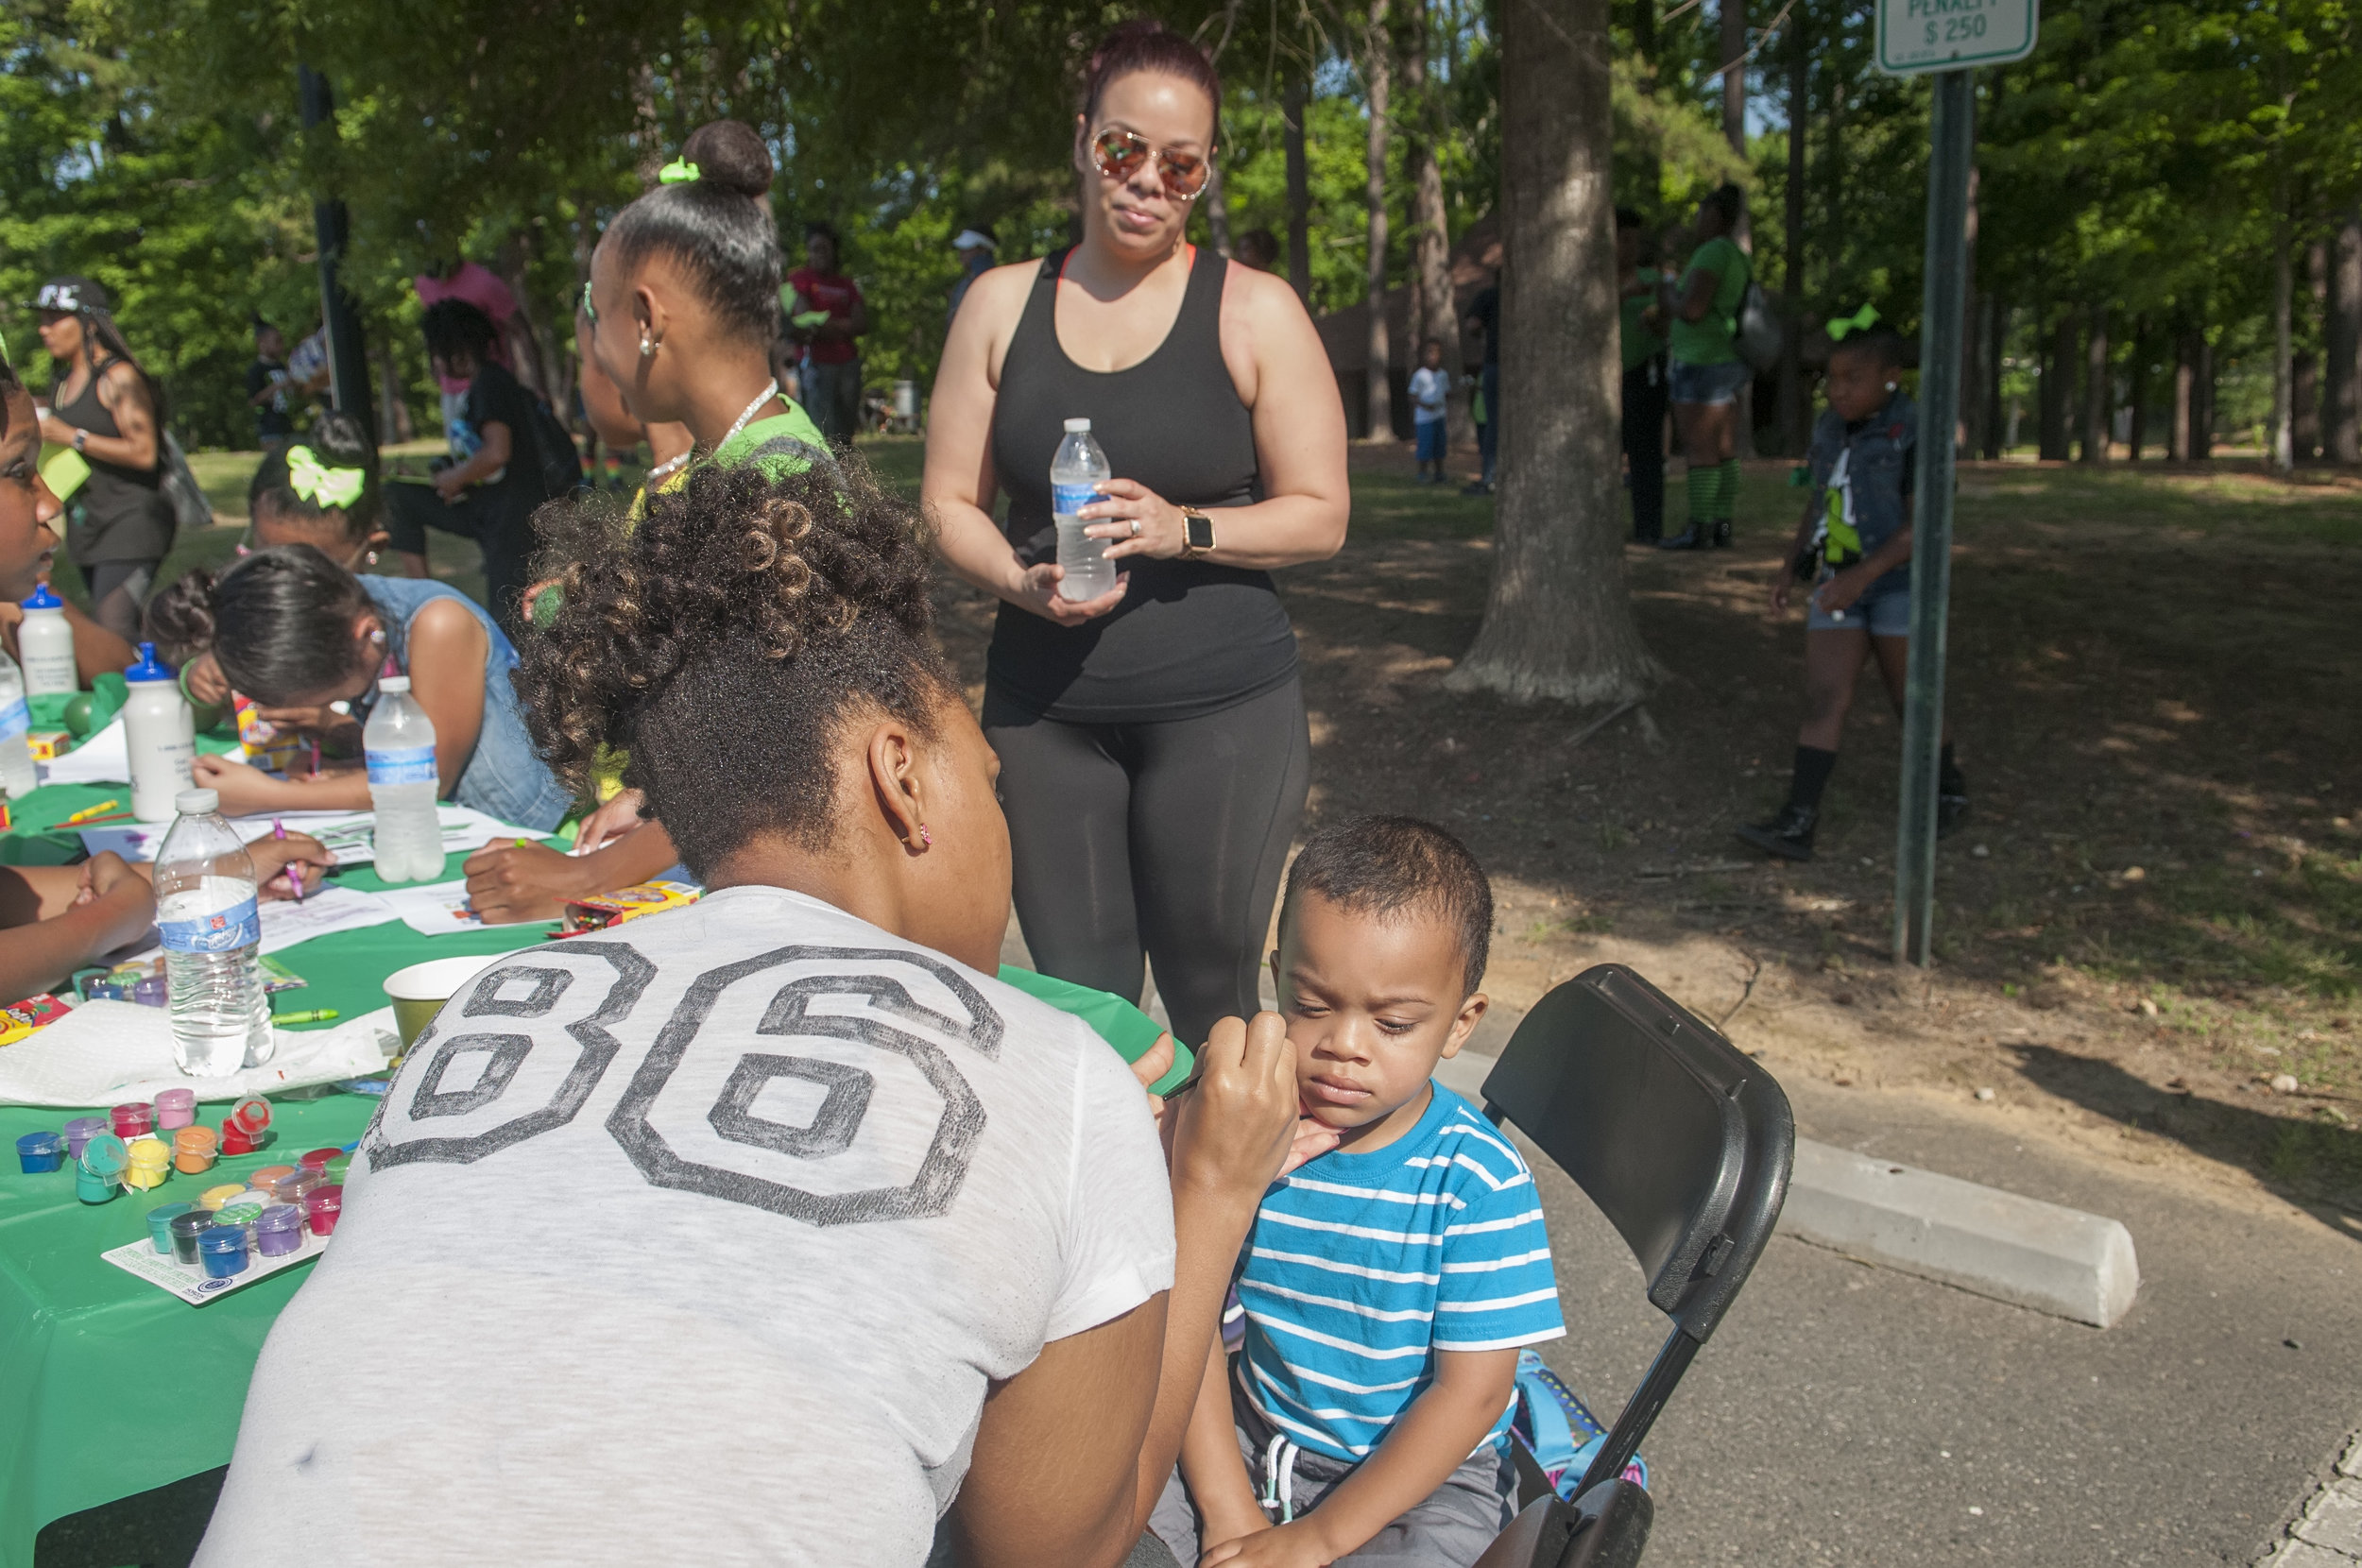 2nd Annual Let's Talk About It Mental Health Awareness Walk @ Park Rd Park 5-20-17 by Jon Strayhorn 022.jpg